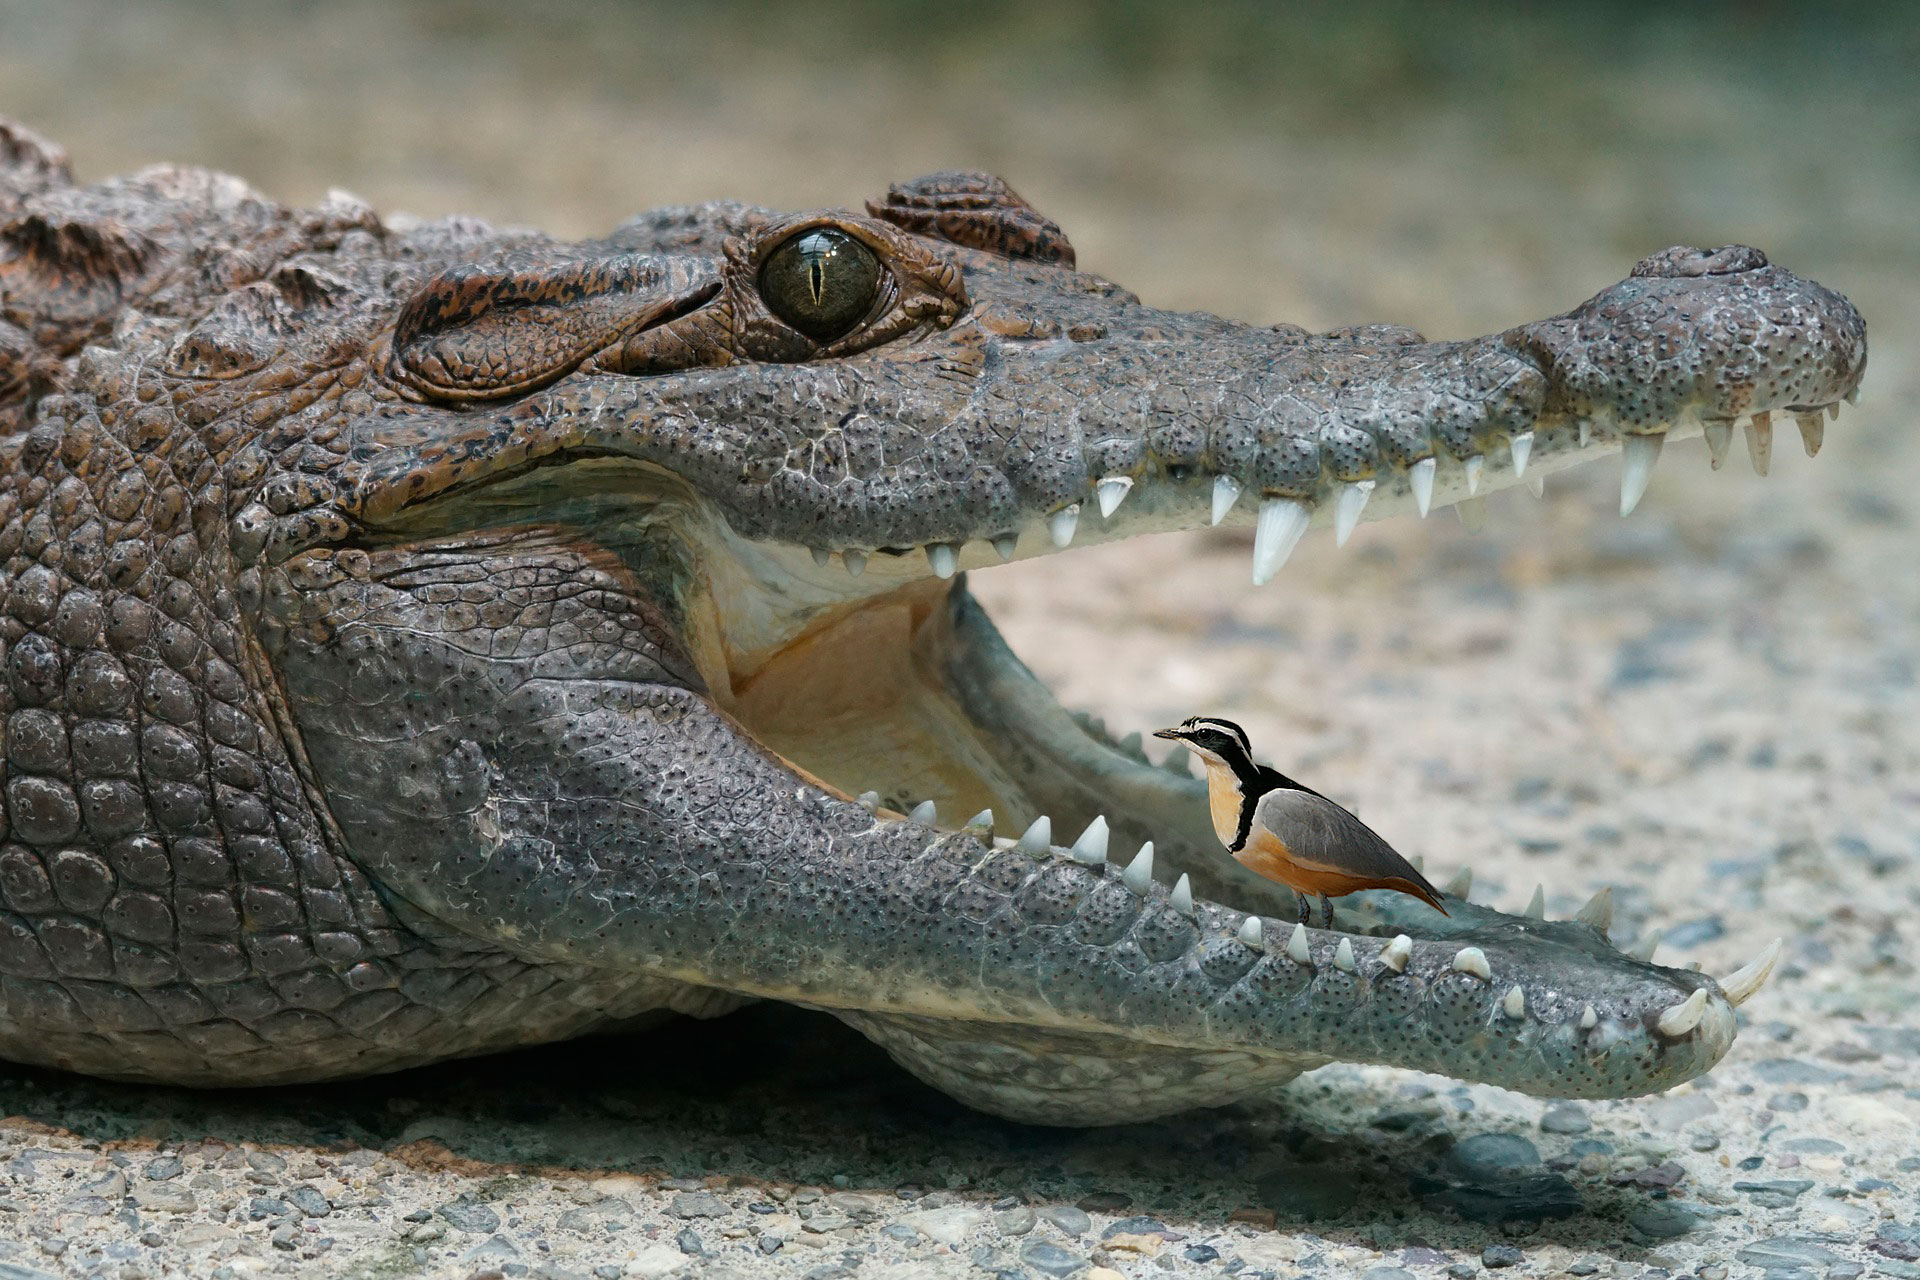 Crocodile and the Plover Bird.